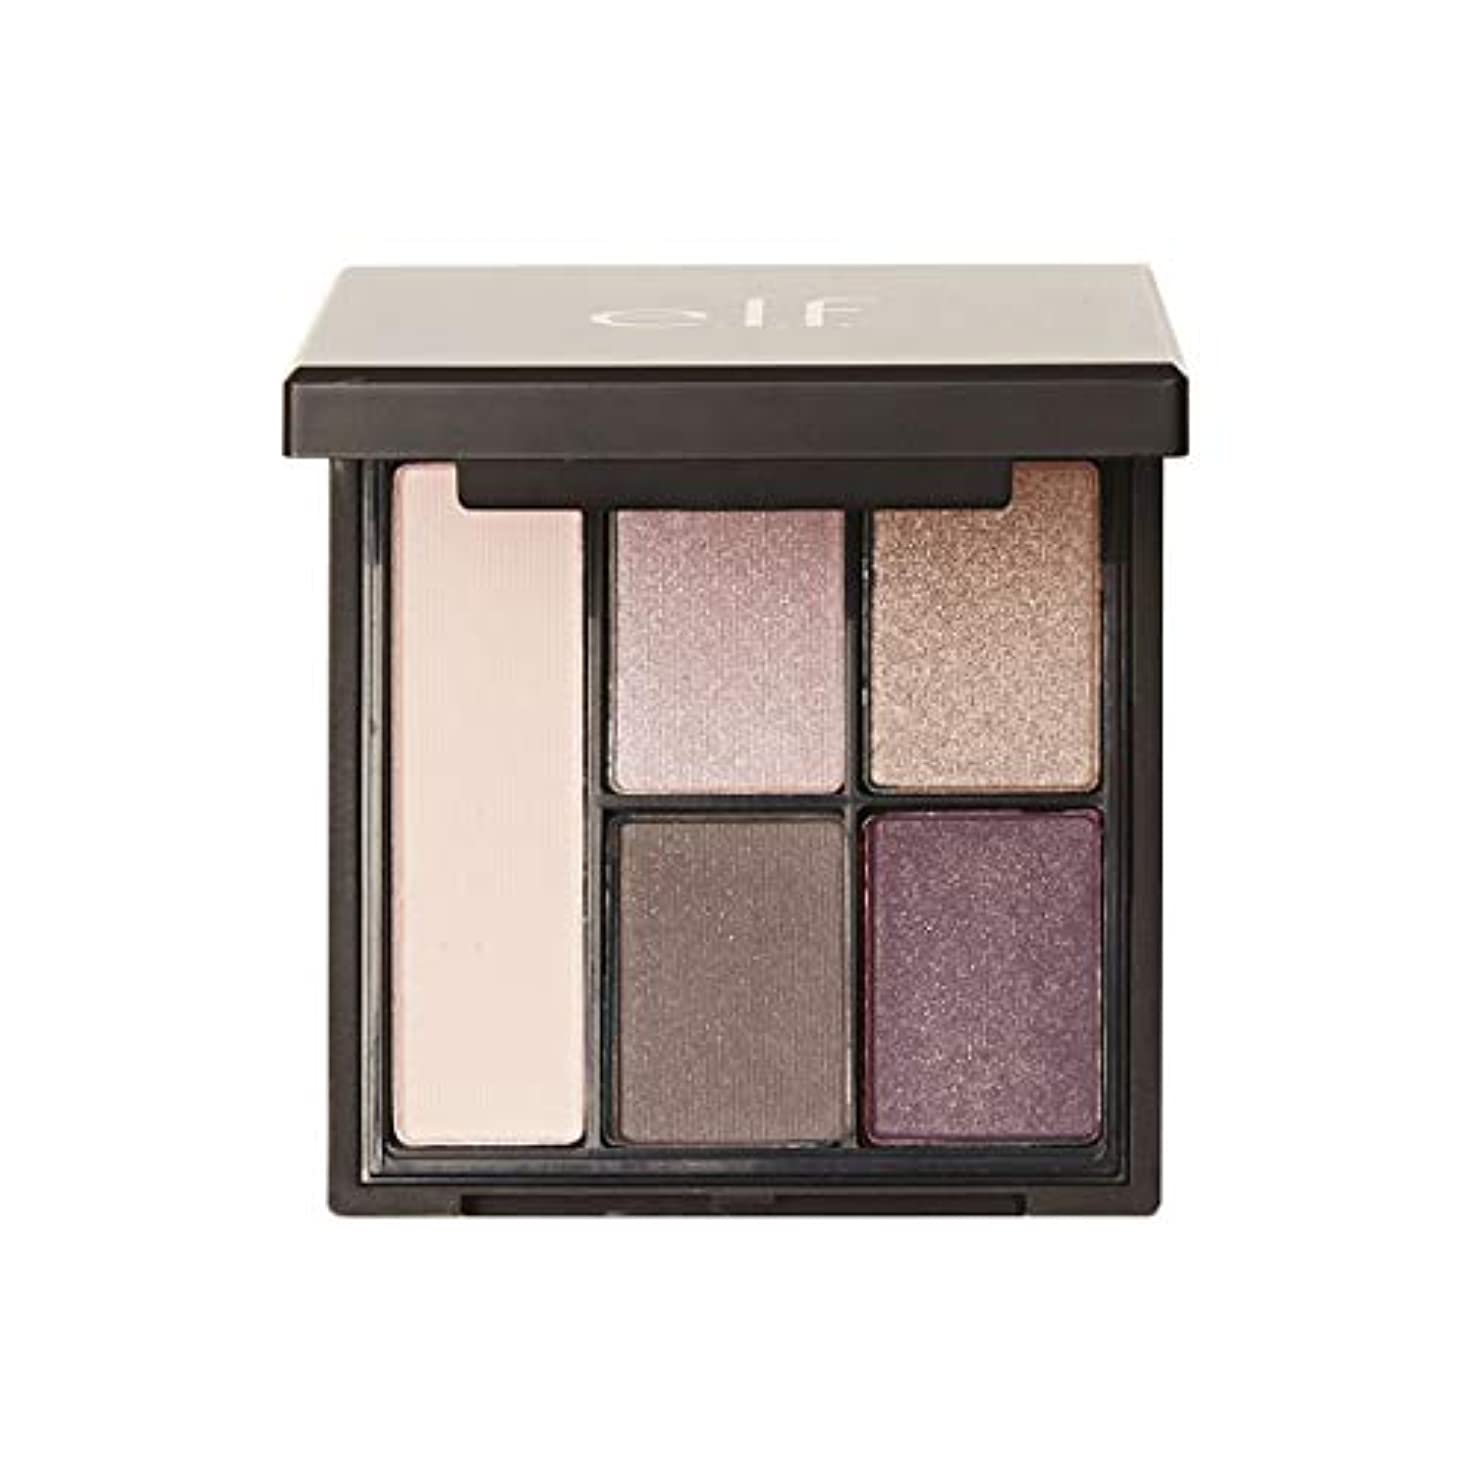 e.l.f. Clay Eyeshadow Palette - Saturday Sunsets (並行輸入品)